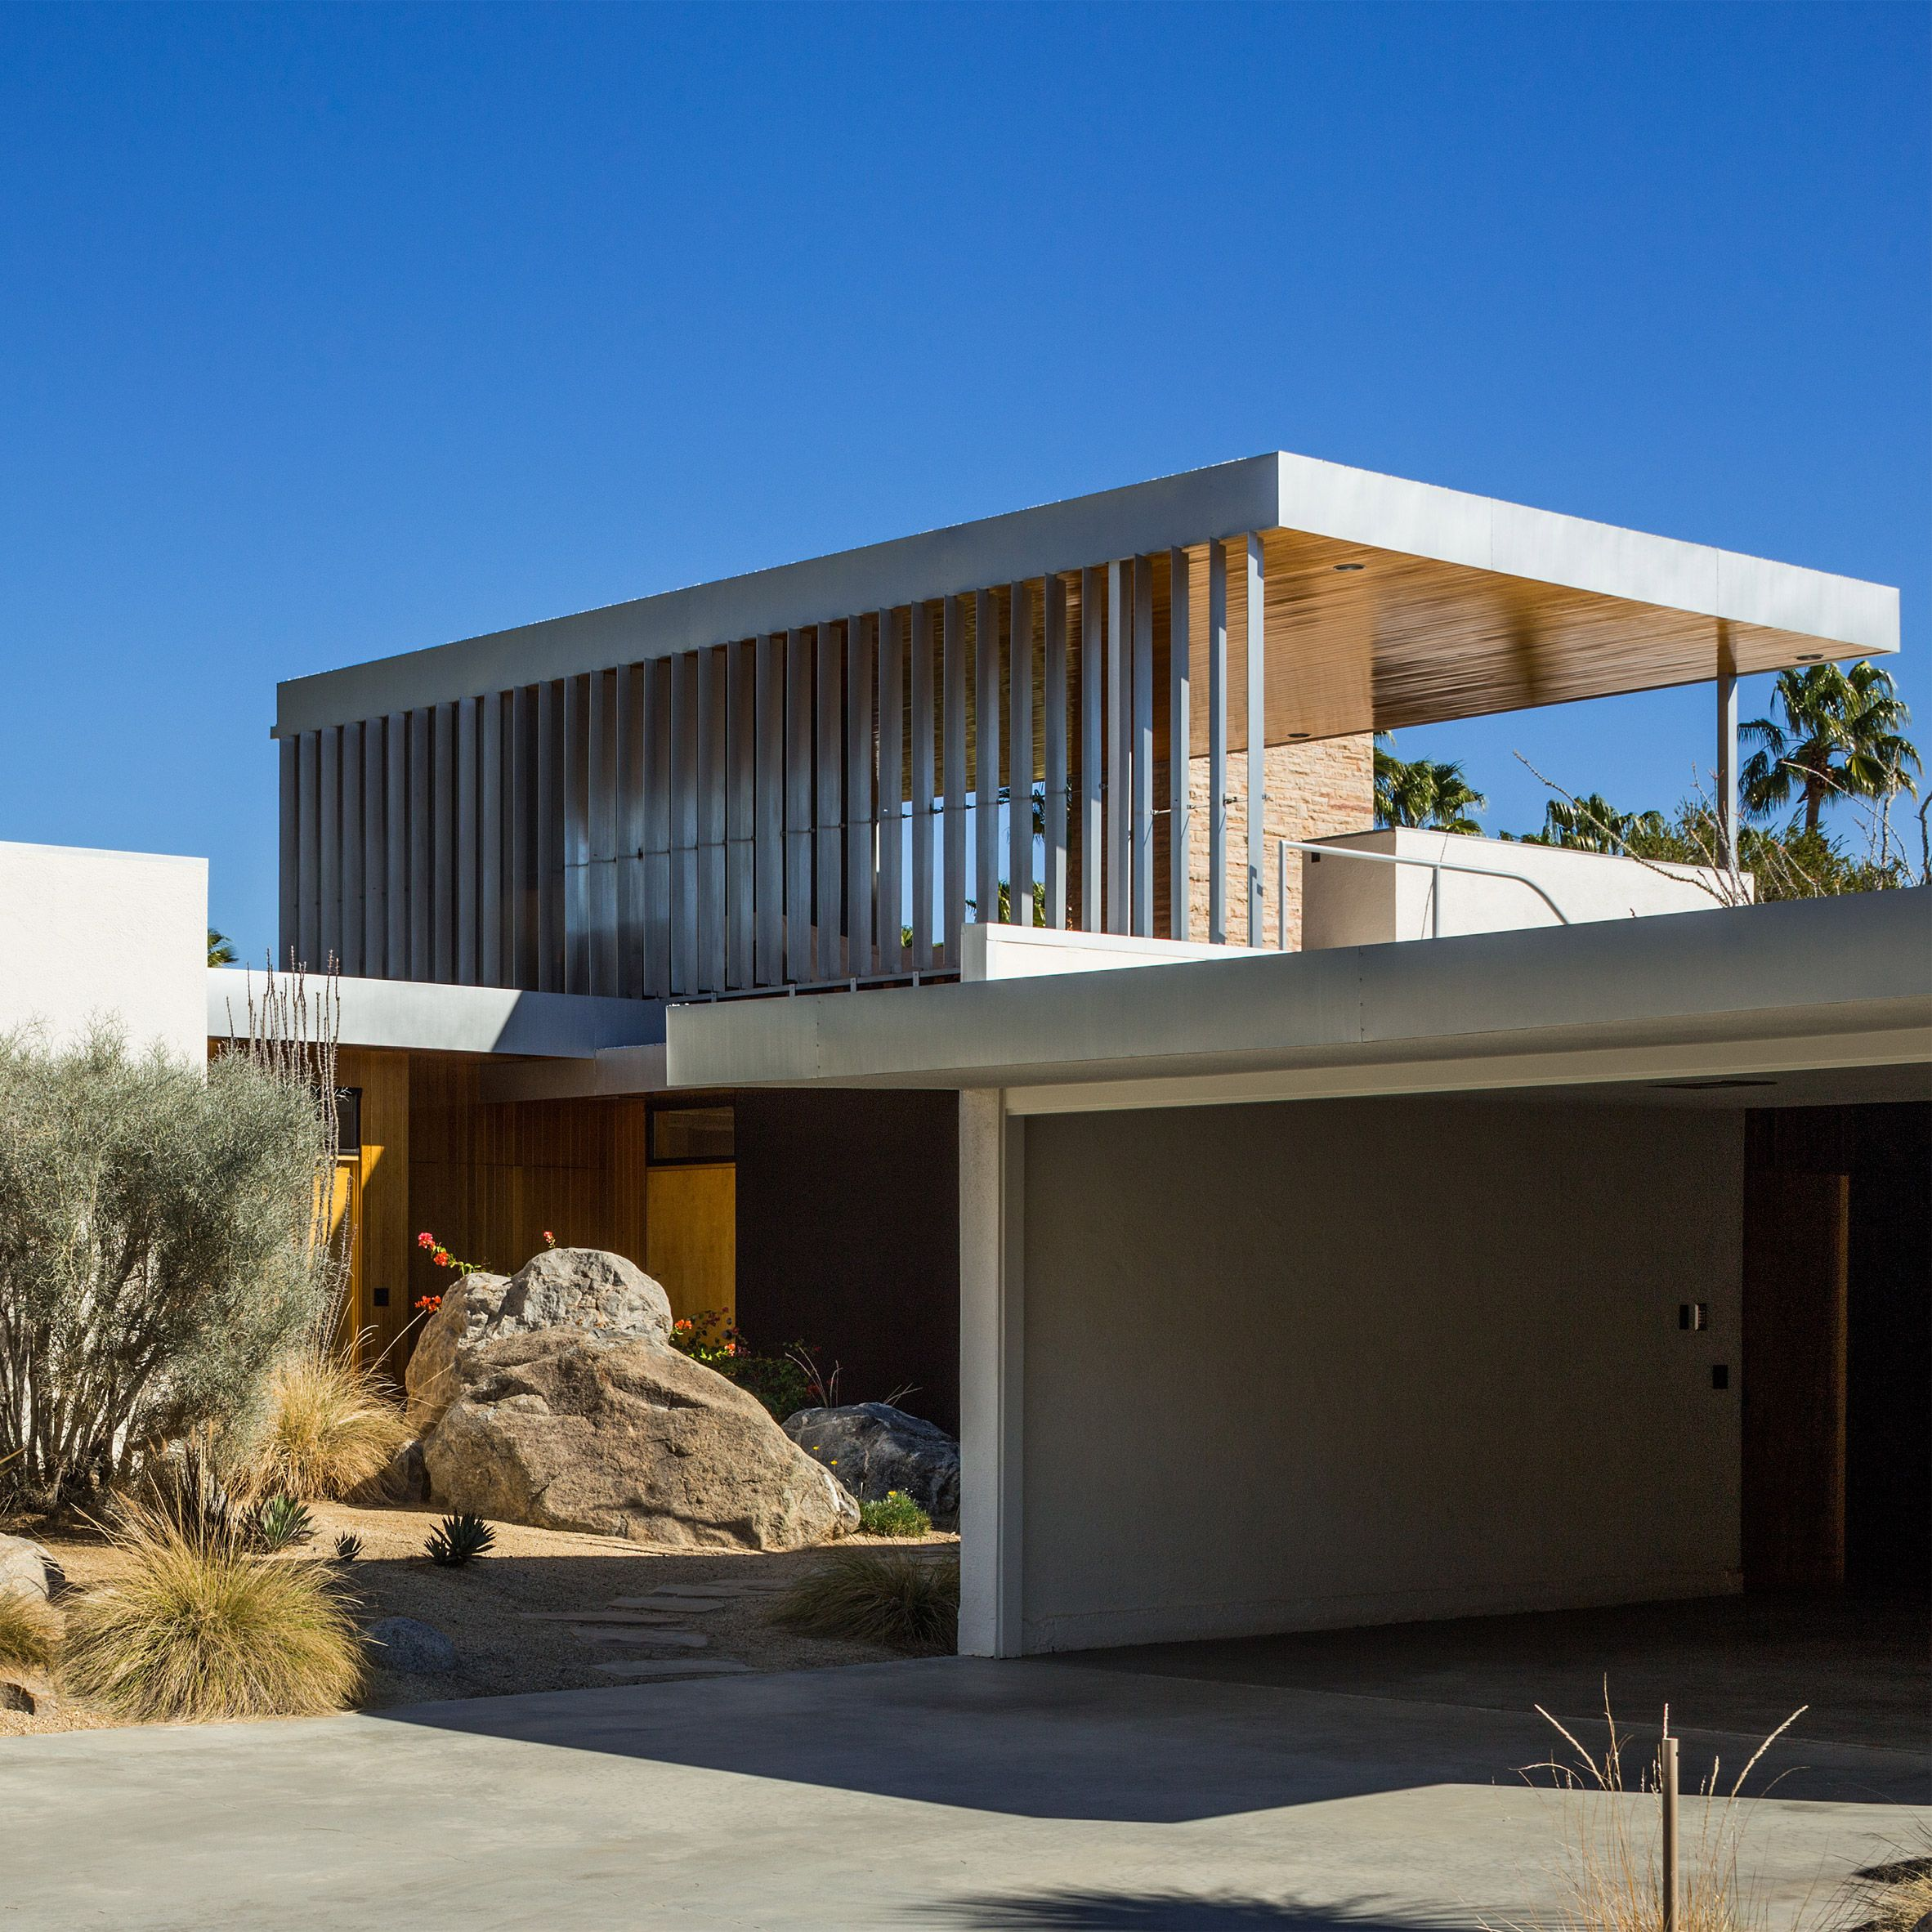 Mid Century Modern Residence: To Coincide With Palm Springs Modernism Week, We've Picked